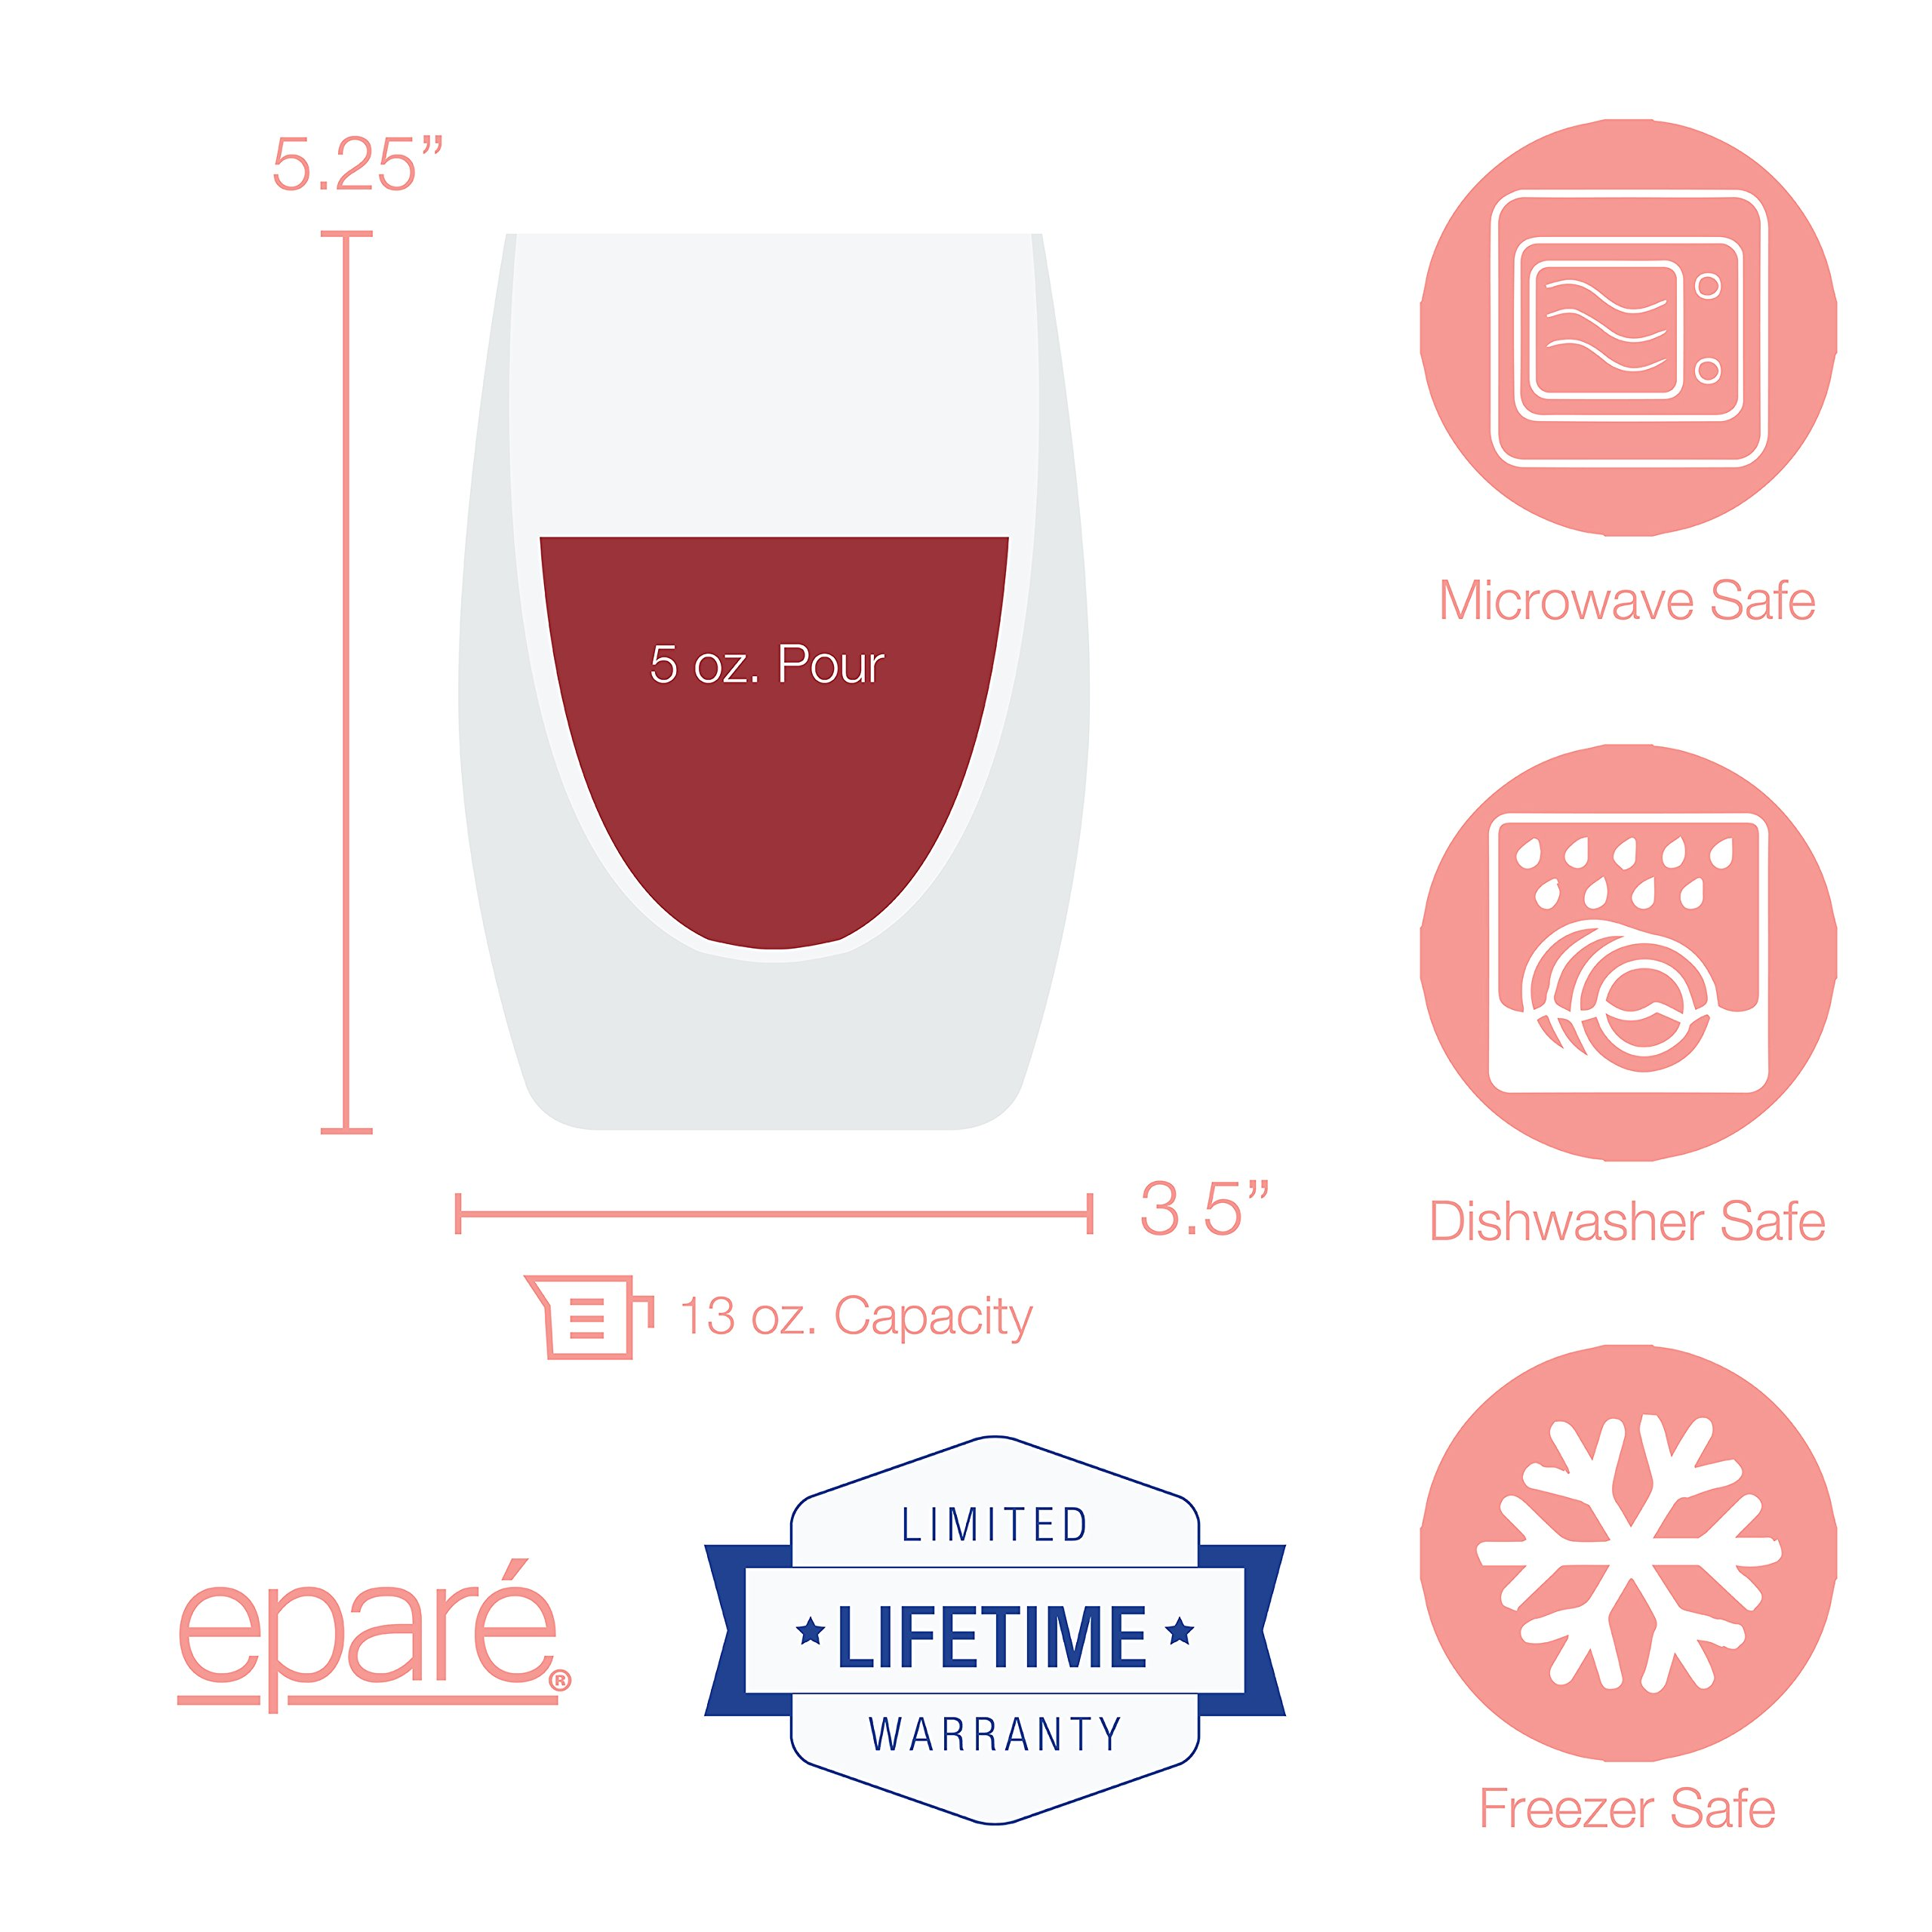 Eparé Wine Glasses, Insulated Stemless Tumbler Set (13 oz, 390 ml) – Double Wall Drinking Glass – Cup for Red, White, Rosé, Champagne, Cocktails, Juice, or Water – 2 Glasses by eparé (Image #7)